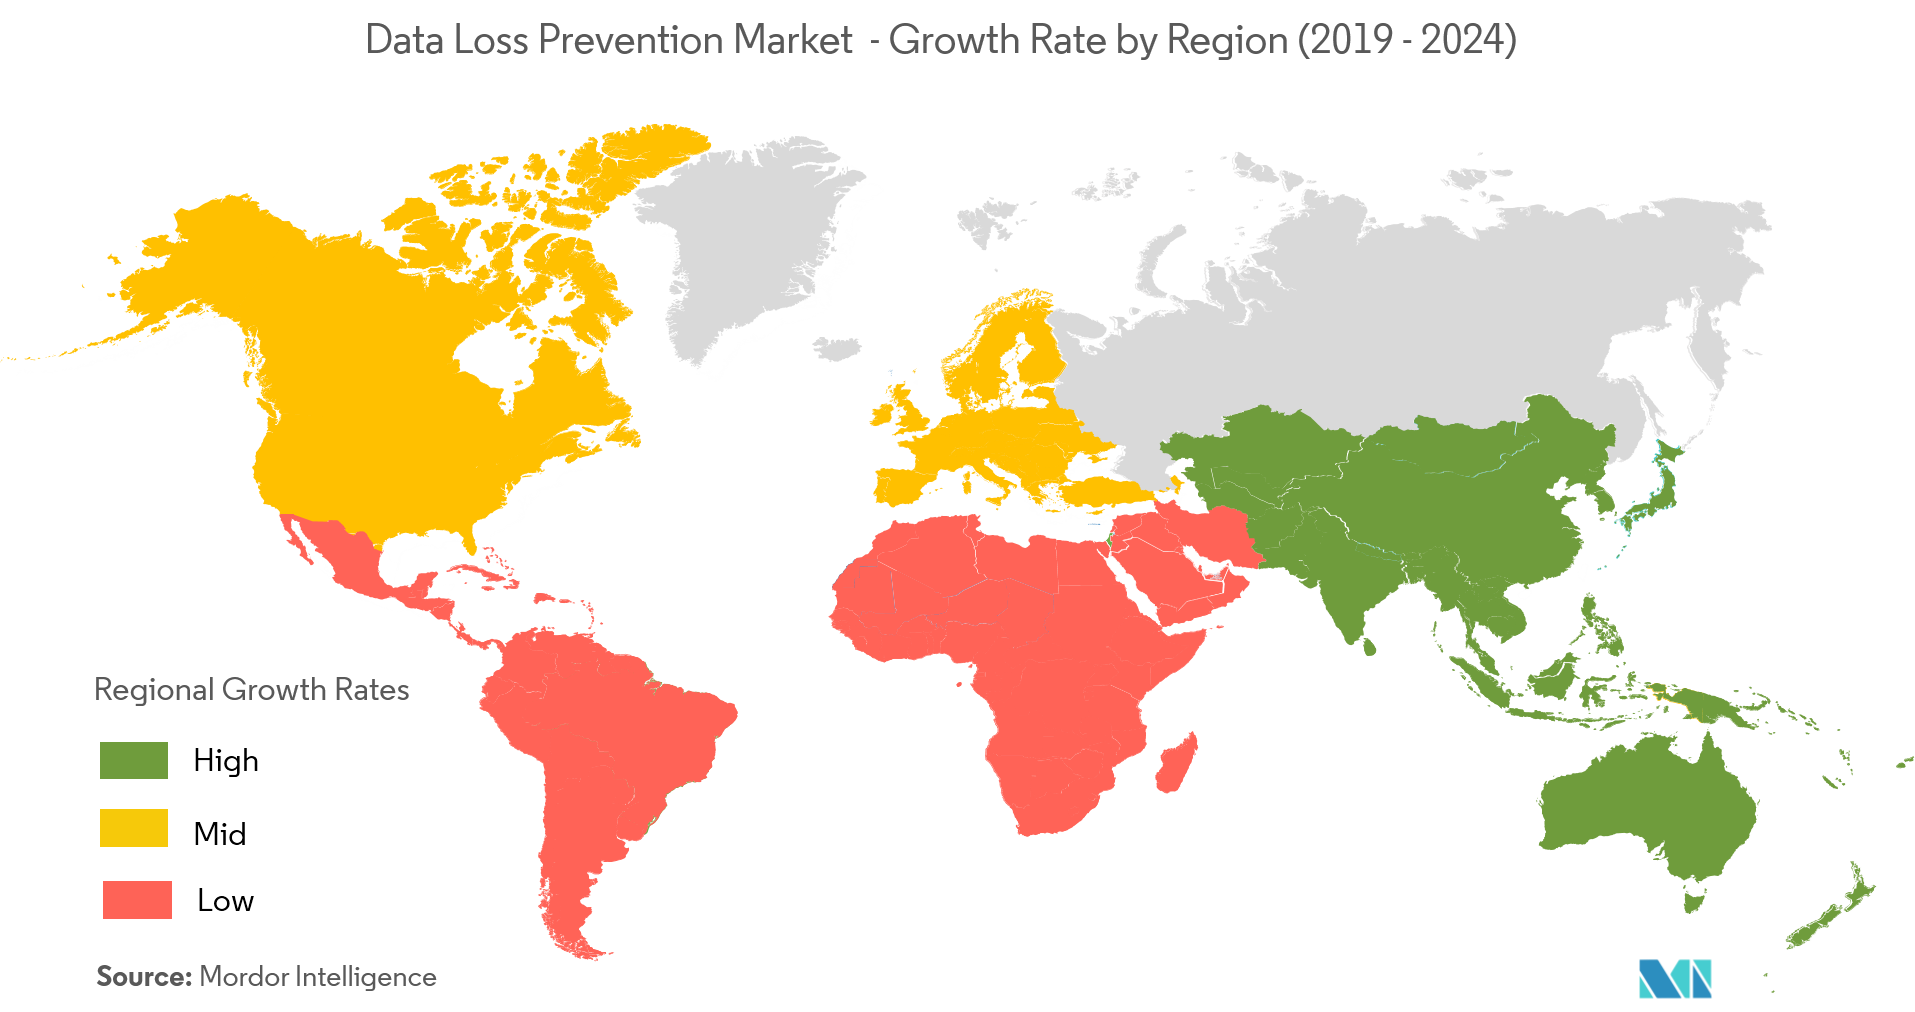 Regional Growth_Data Loss Prevention Market